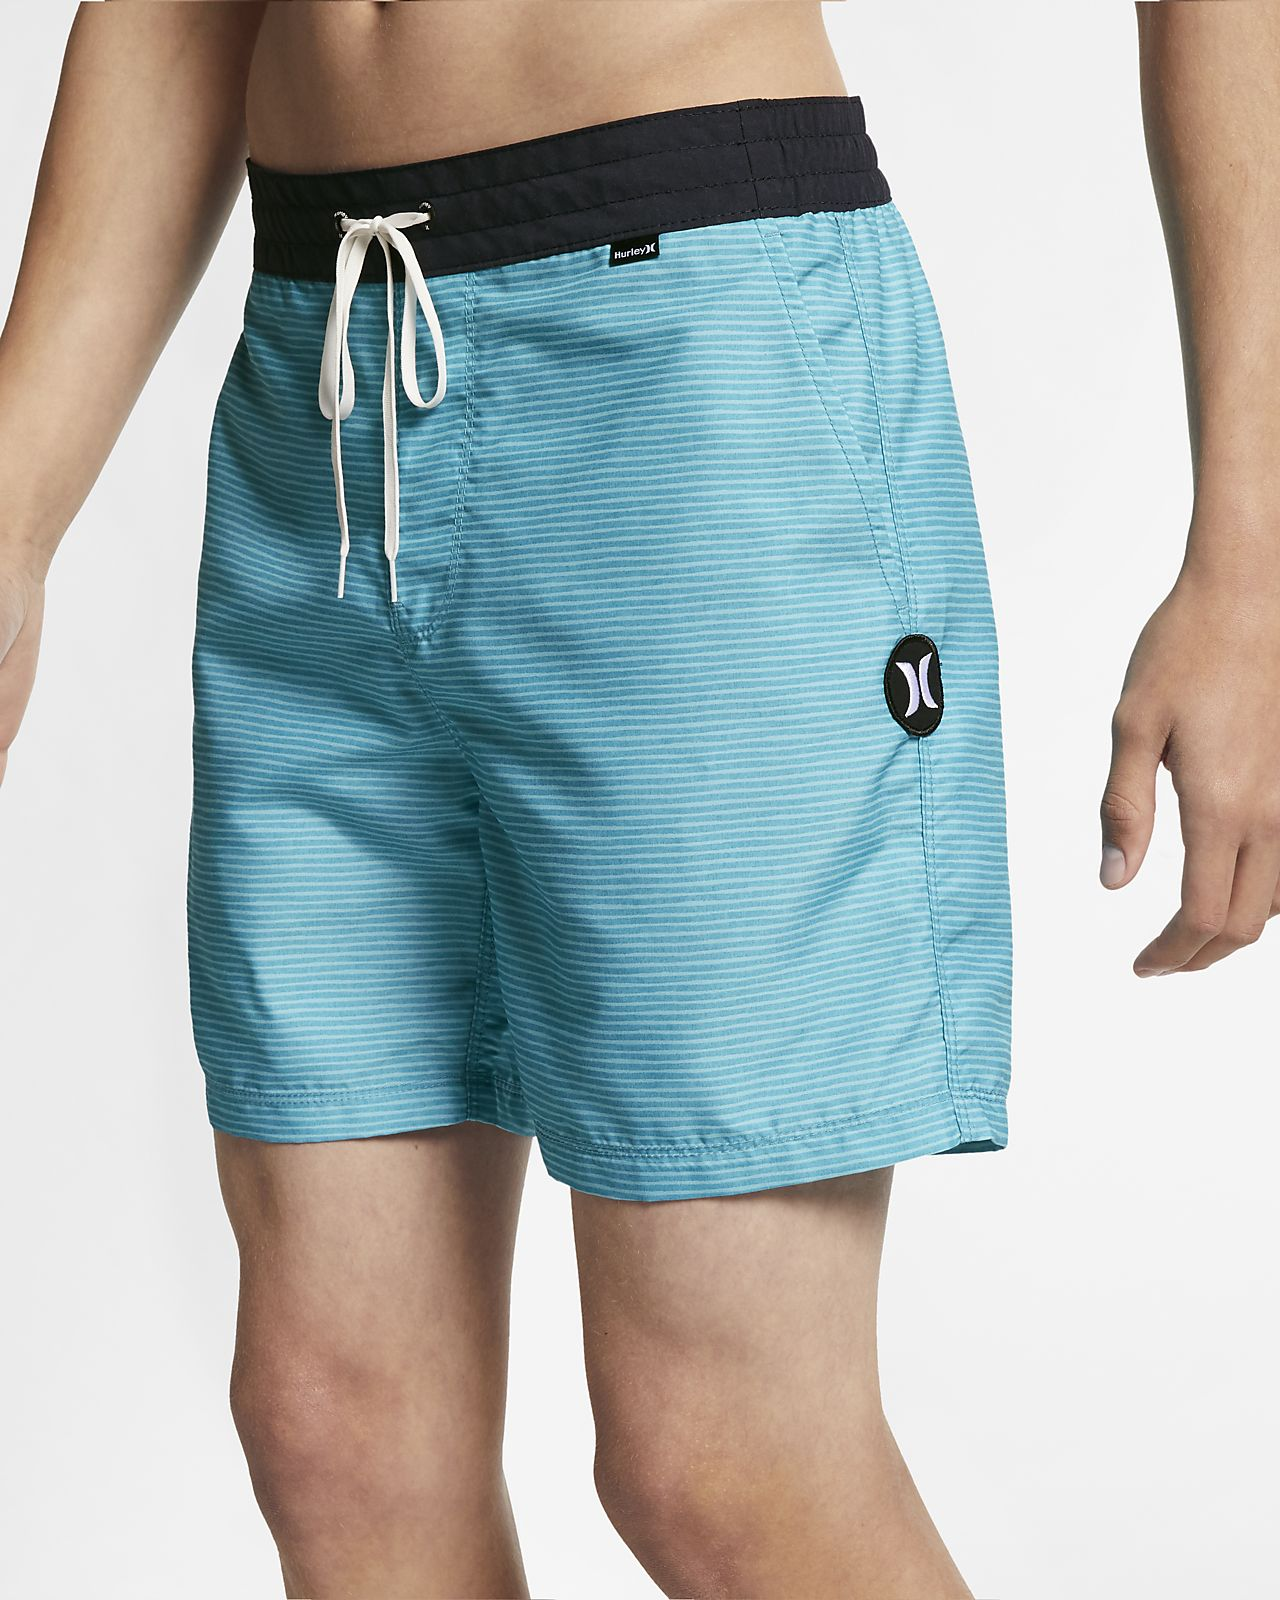 Hurley Dazed Volley Herren-Boardshorts (ca. 43 cm)